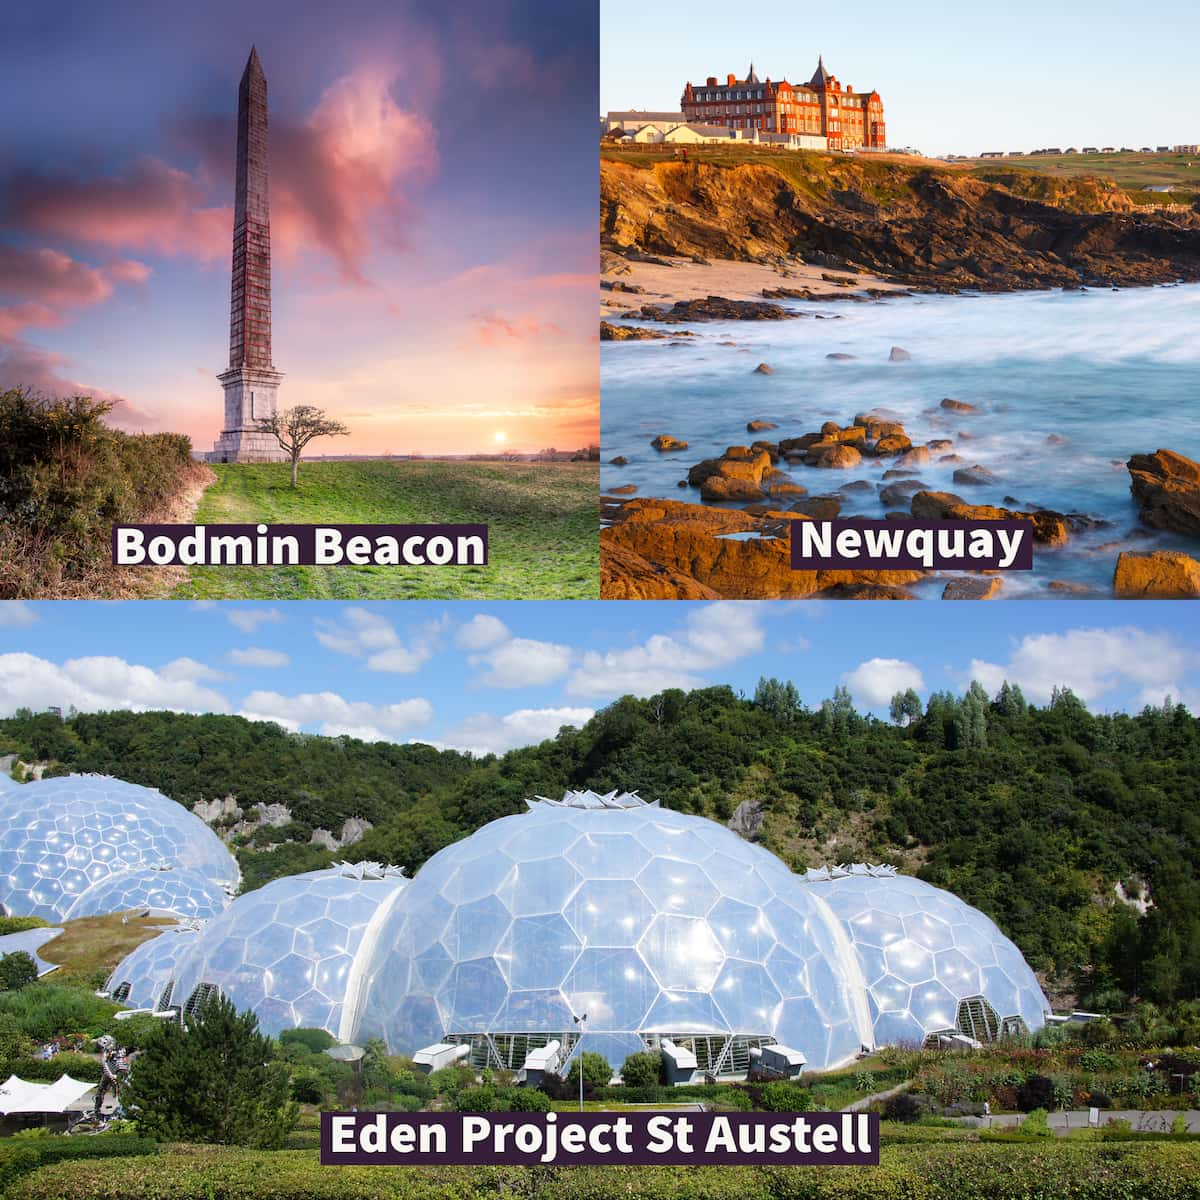 Top left the views at Bodim Beacon, top right view of Newquay from the beach and bottom Eden Project in St Austell.